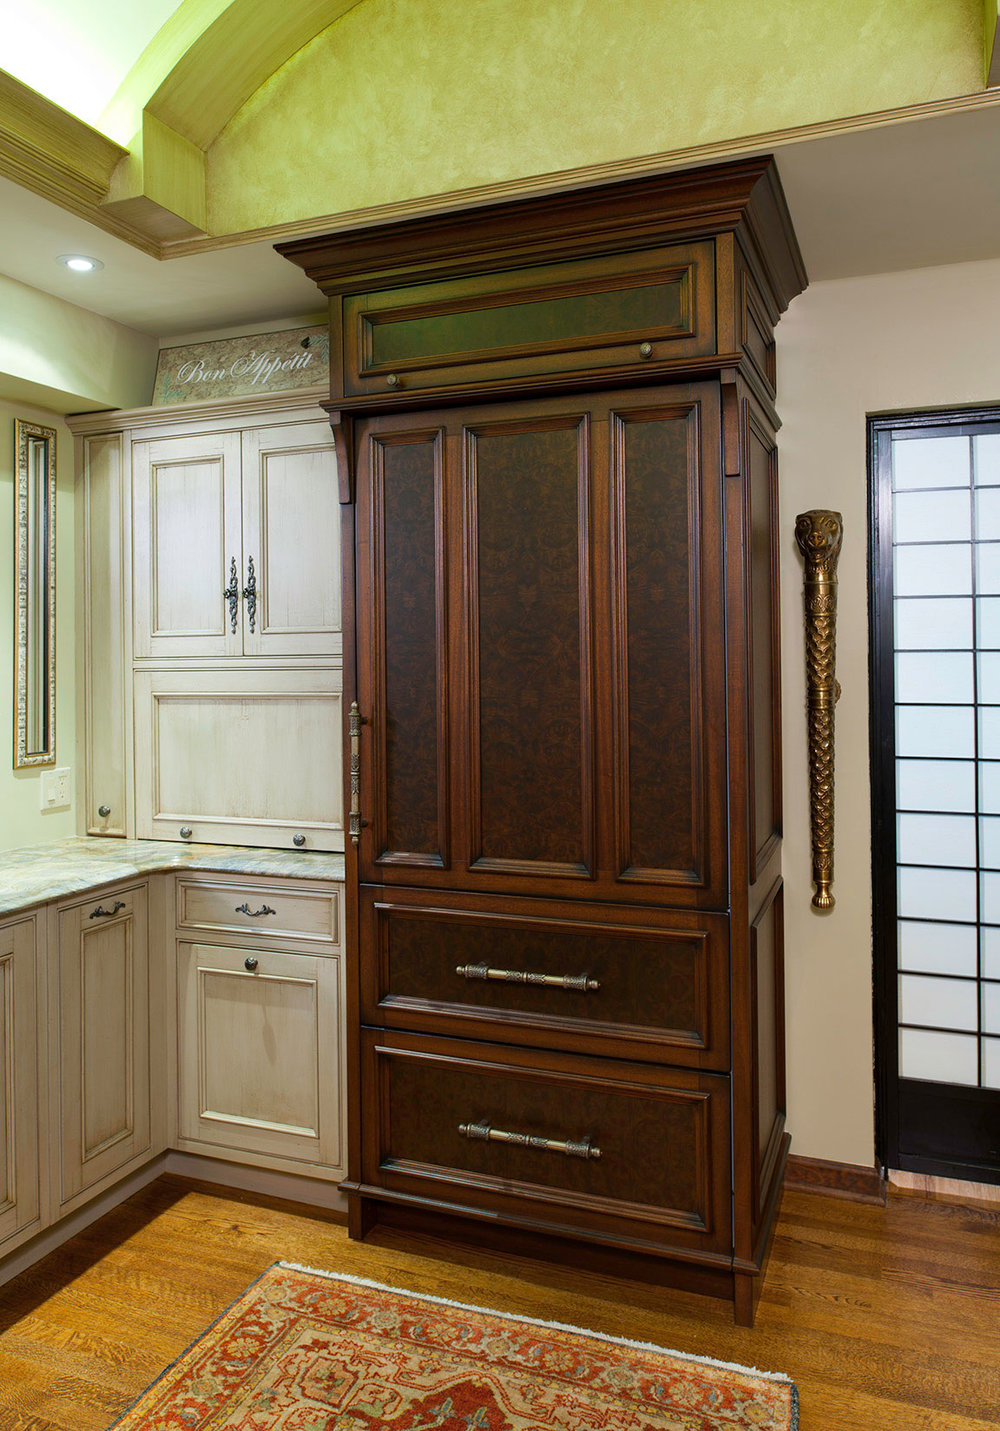 kitchen_bath_Concepts_pittsburgh_traditional_home5_8.jpg